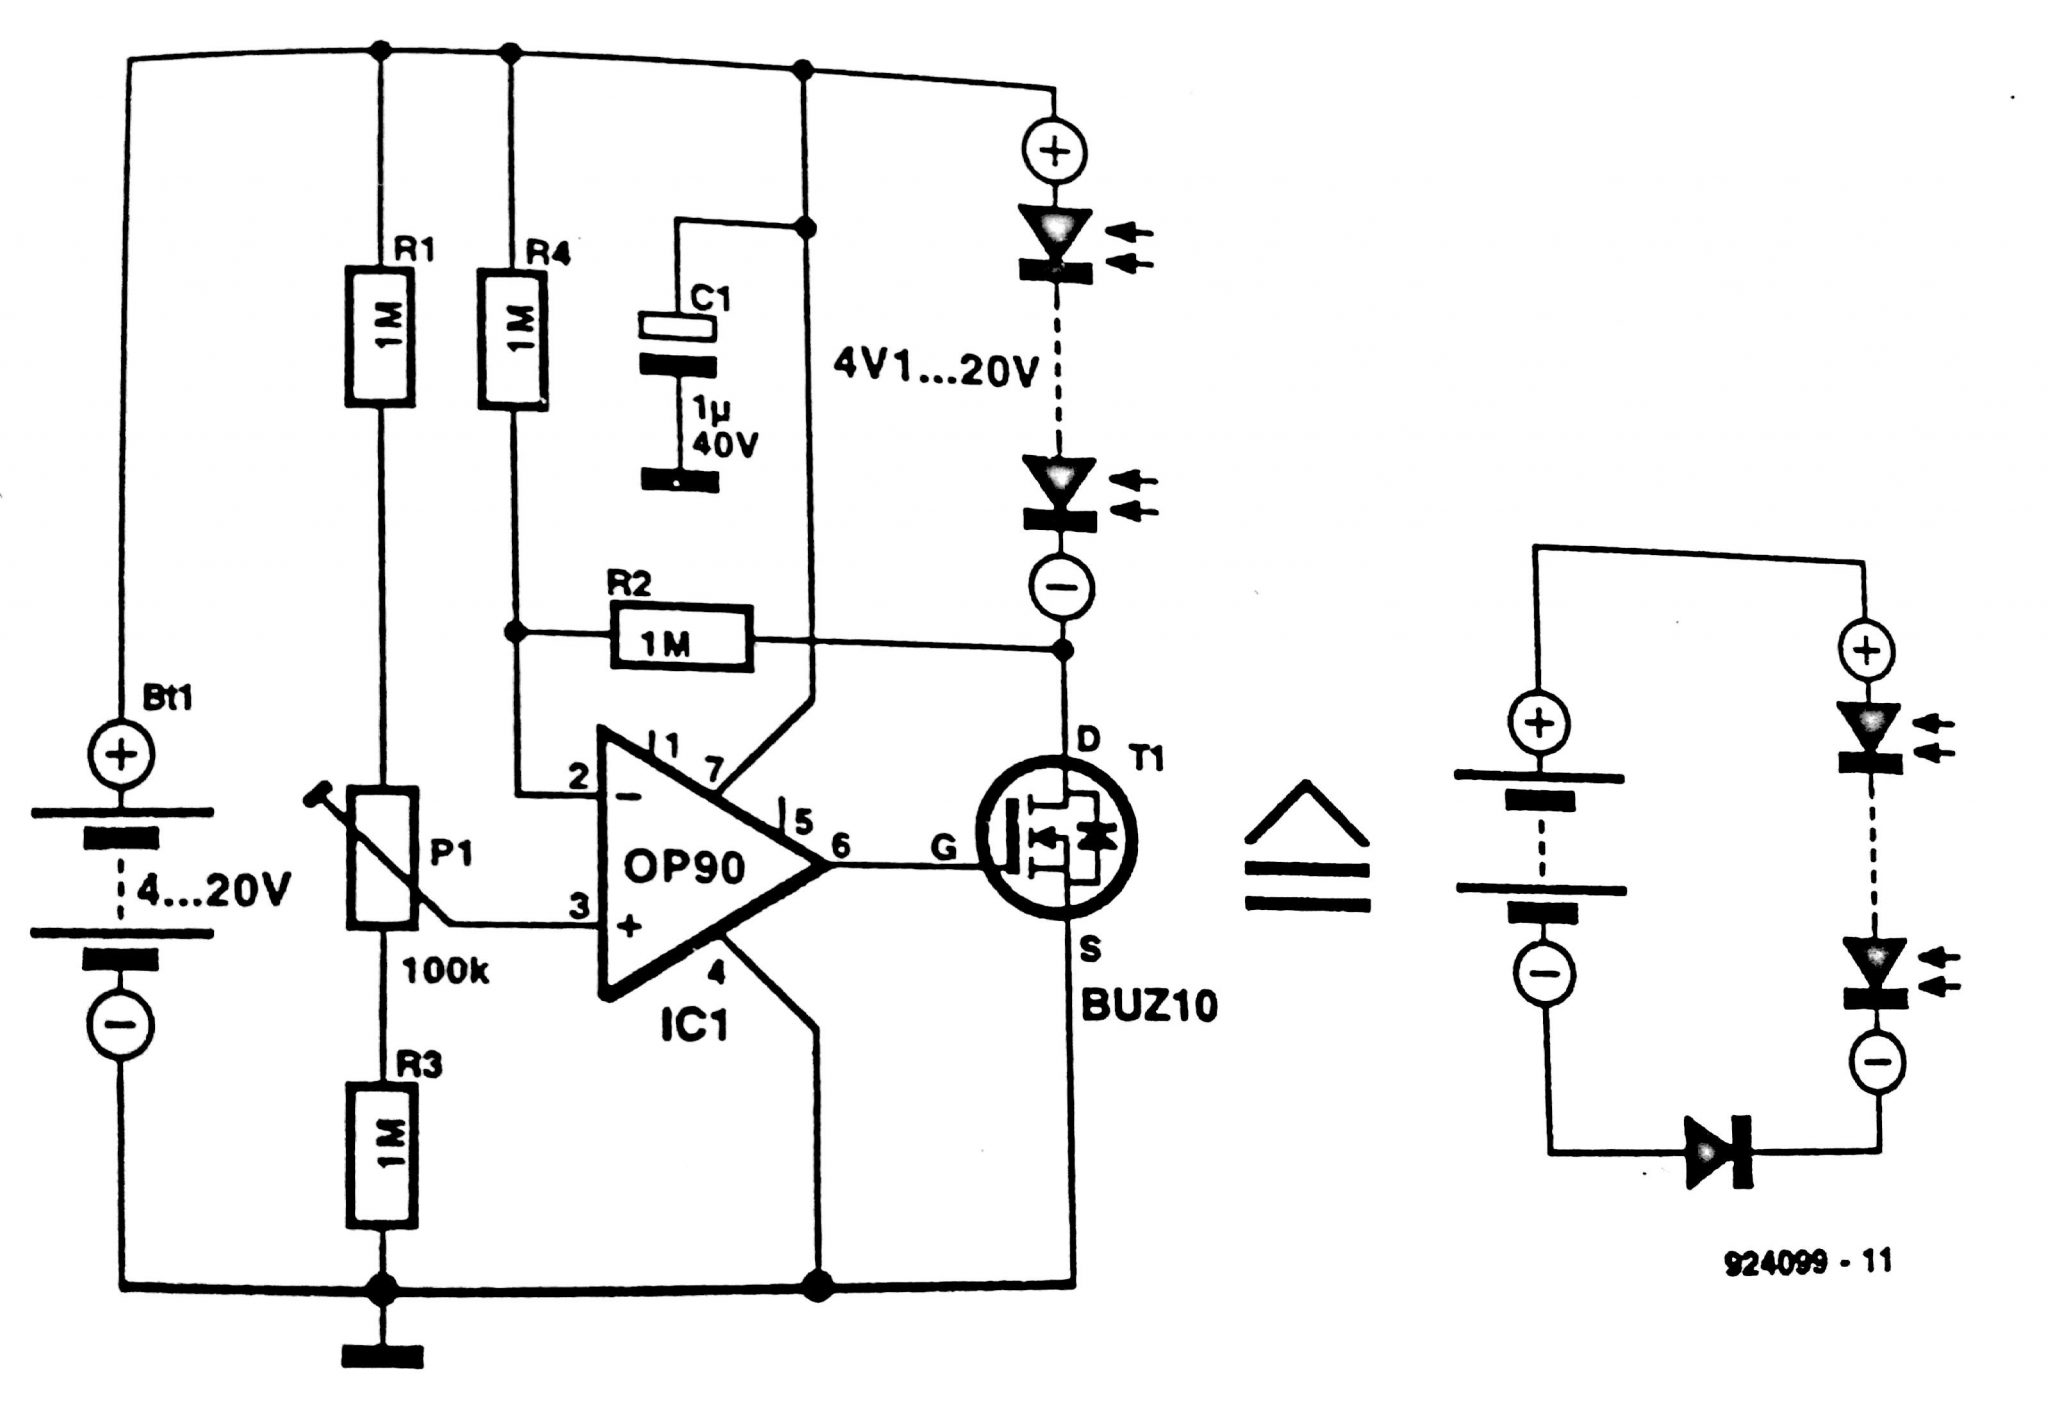 motobecane wiring diagram wiring diagram